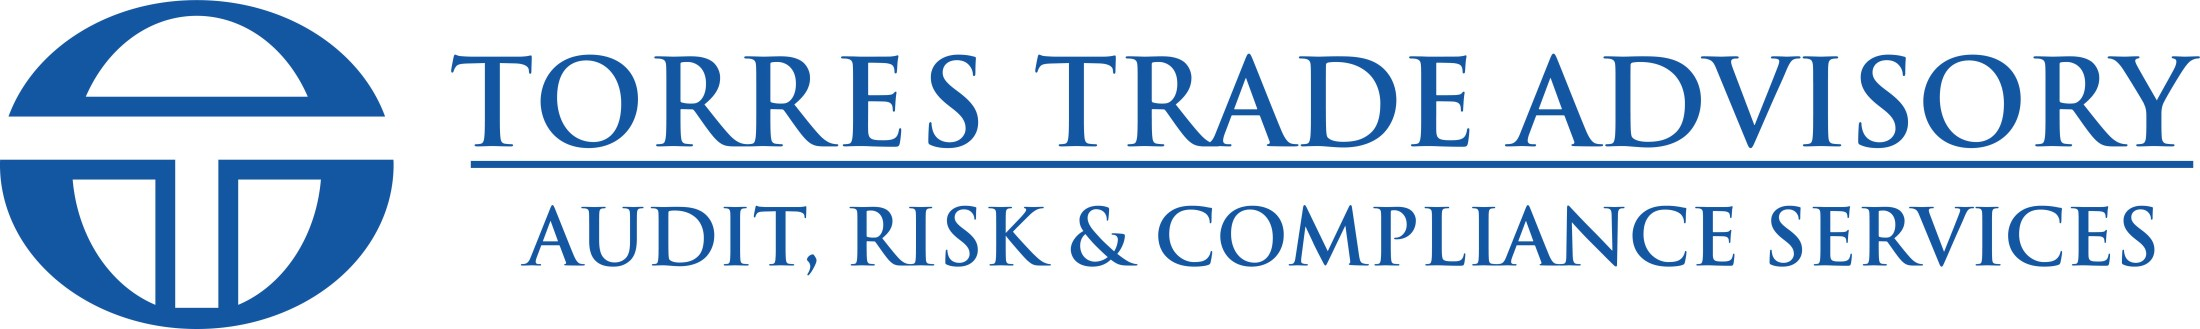 Torres Law Launches Torres Trade Advisory to Expand Solutions for Businesses Facing Complex Trade Law Compliance Issues 6